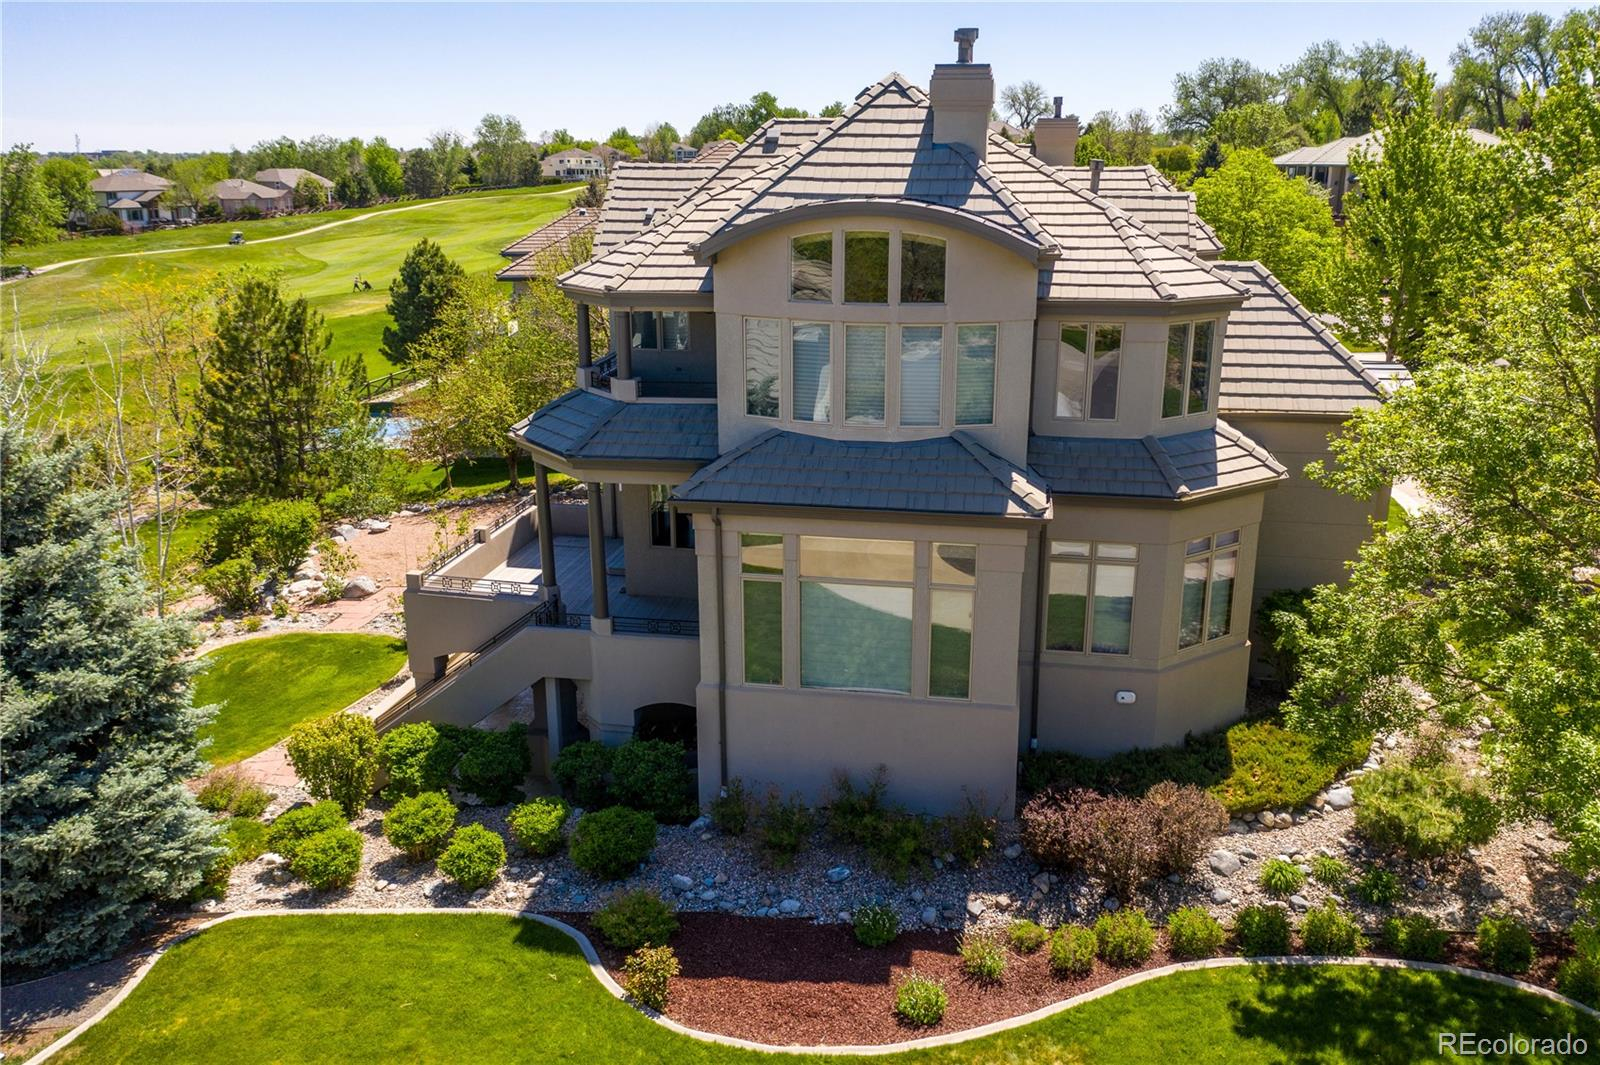 MLS# 7642553 - 5 - 3575 W 110th Place, Westminster, CO 80031